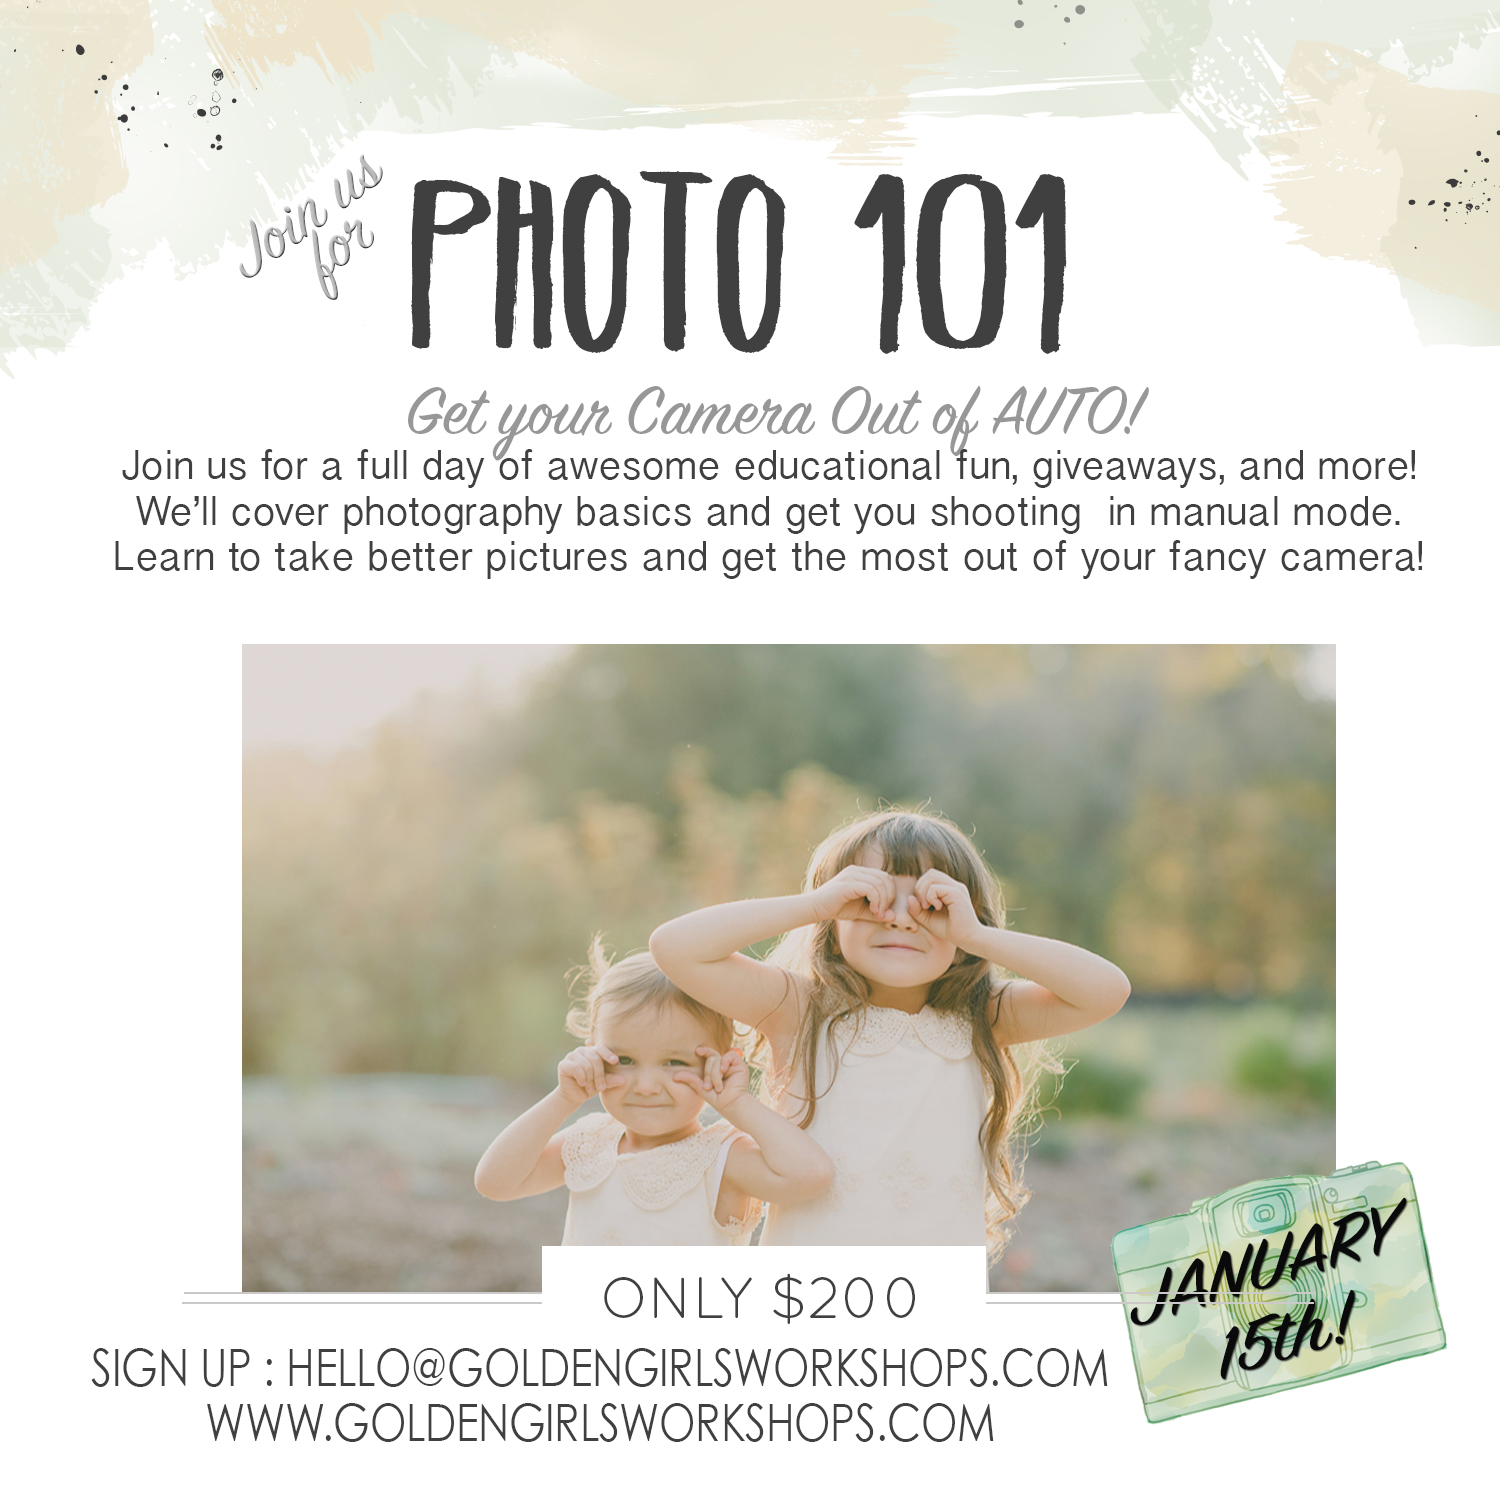 Upcoming events golden girls workshops well teach you the basics on how to use your camera lighting and how to frame your shots plus there lots of giveaways and sweet things to photograph jeuxipadfo Gallery